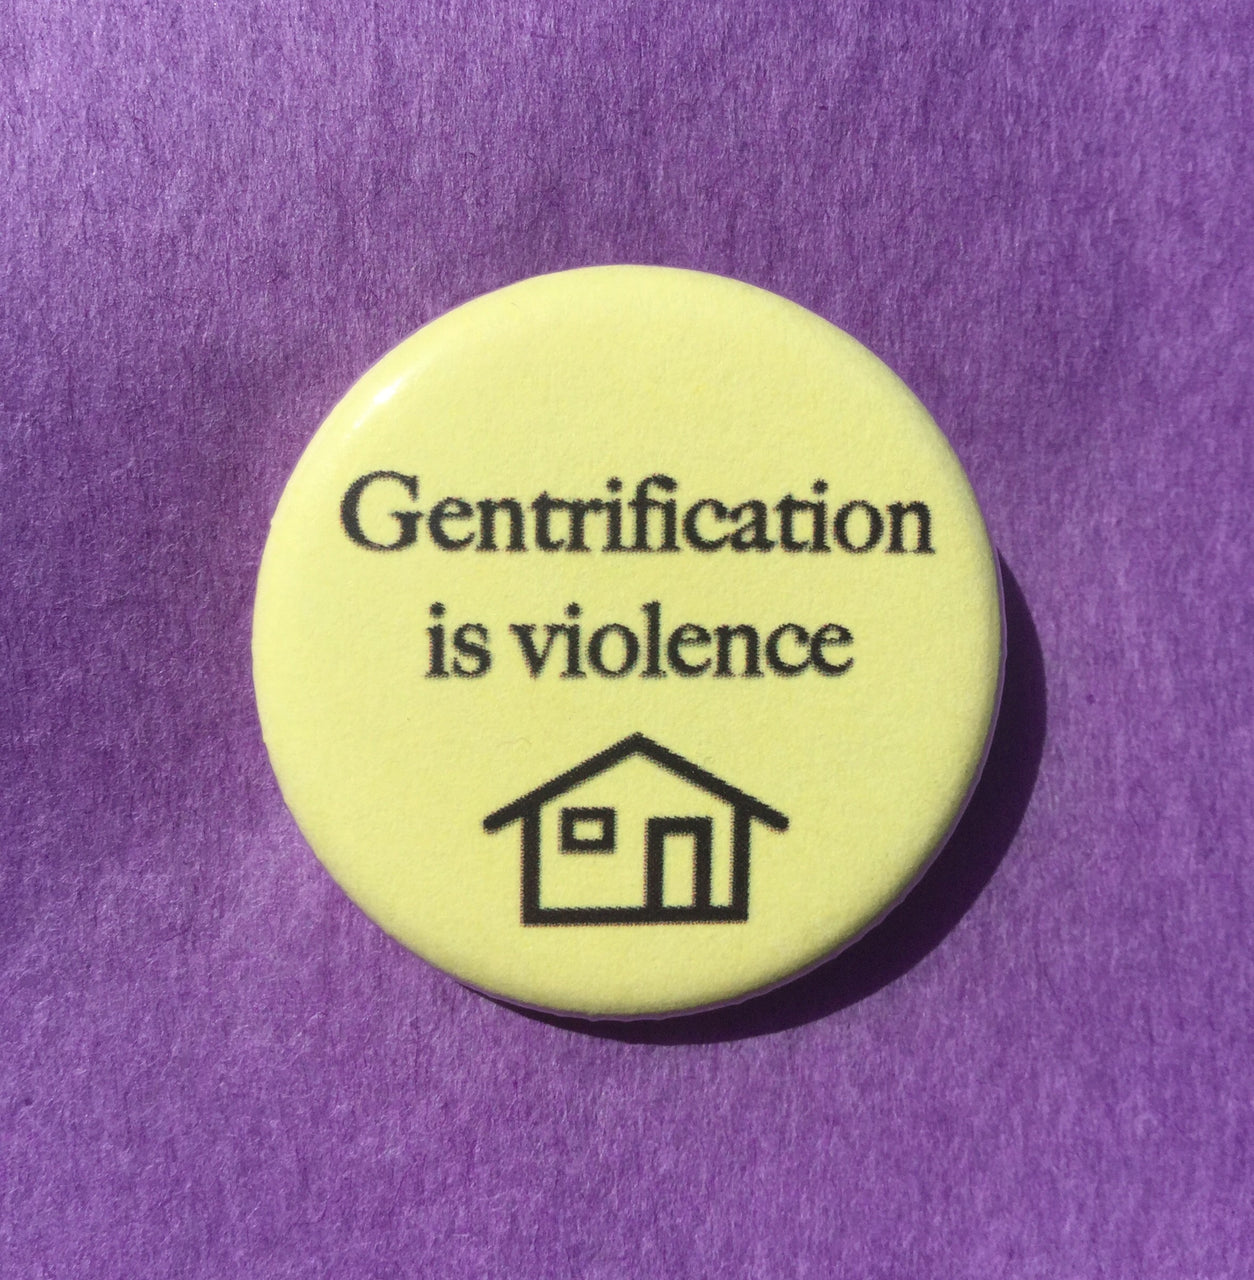 Gentrification is violence